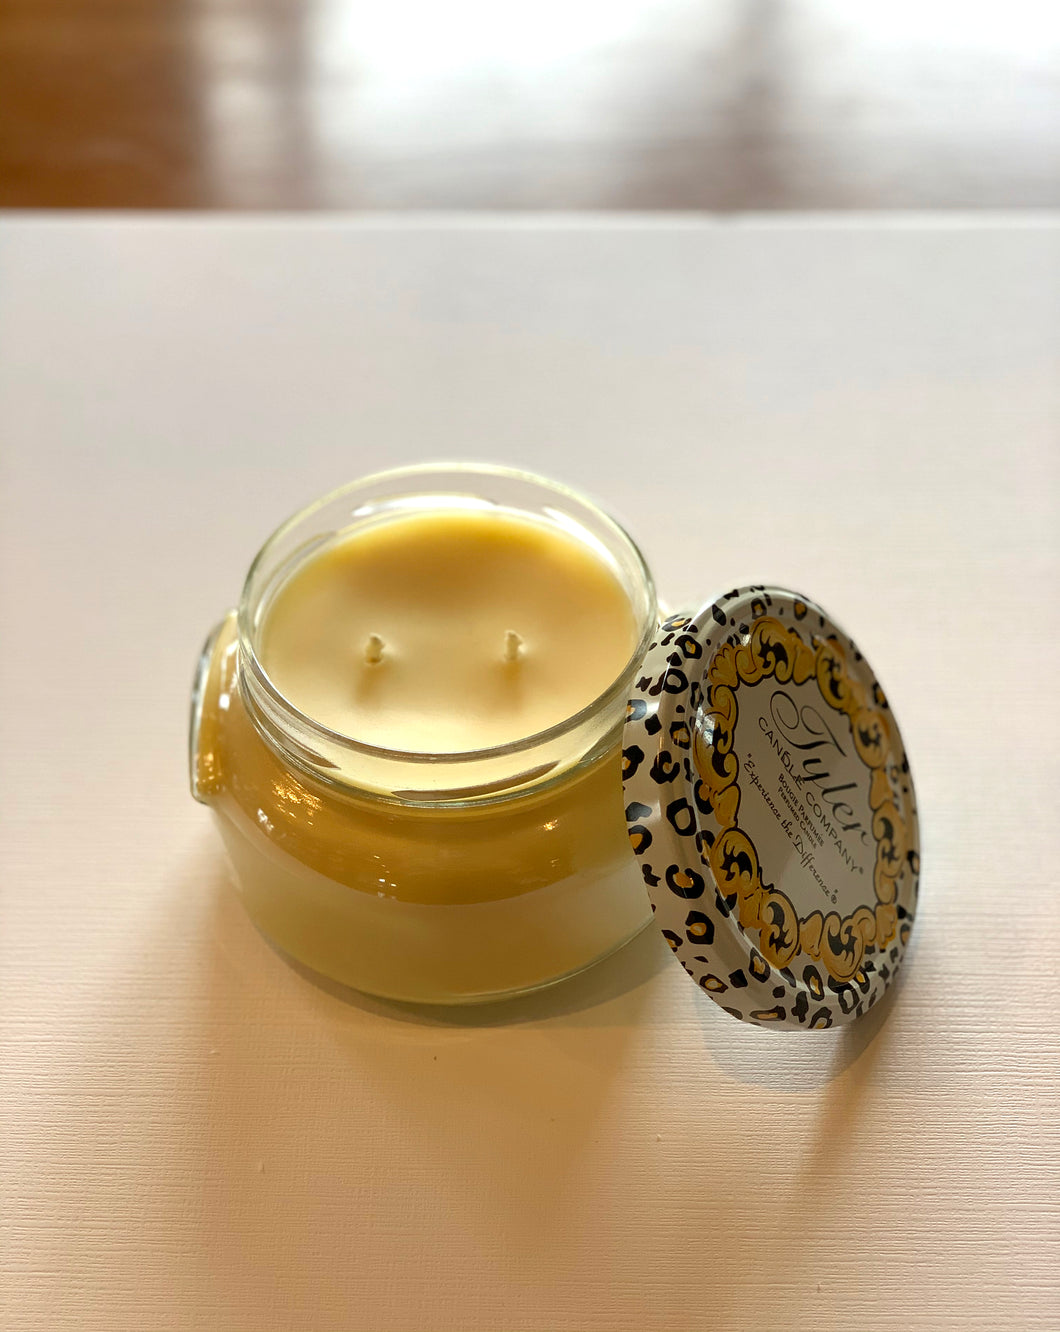 22 oz Pineapple Crush Candle